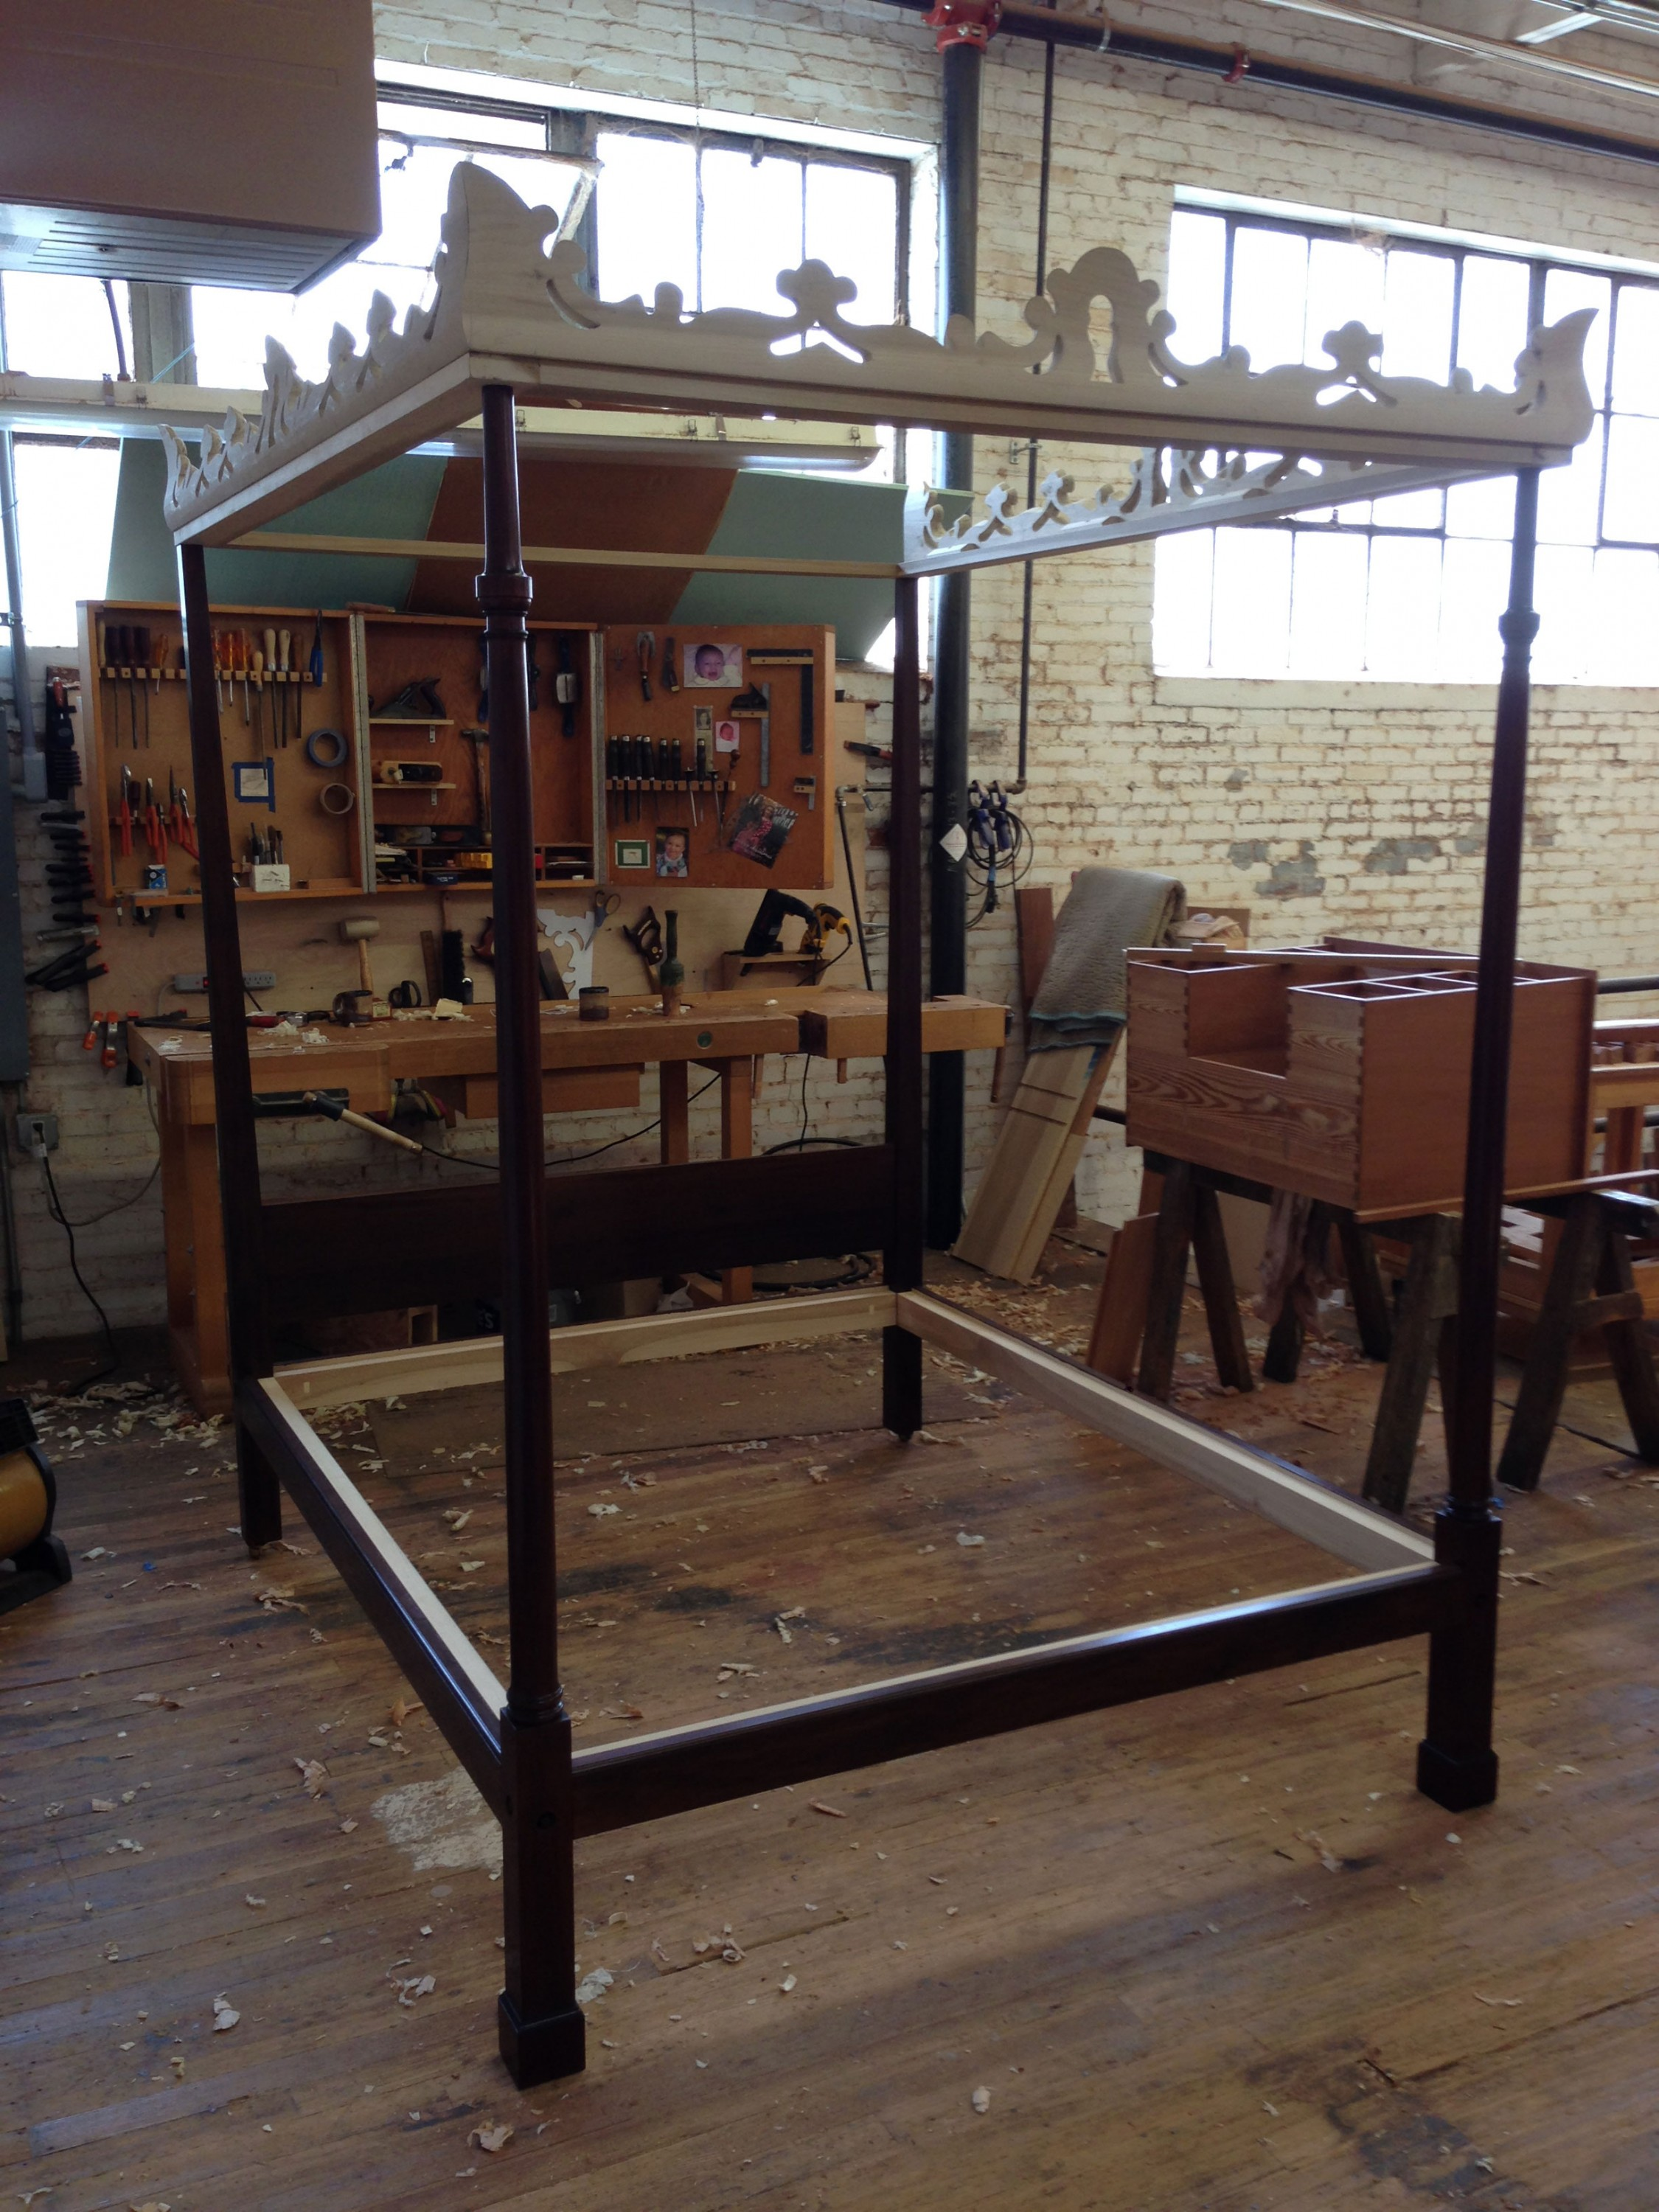 The reproduction dressing table, in progress, sits on the workbench to the side of the completed reproduction bedstead. Courtesy of Harrison Higgins, Inc., Richmond, Virginia.